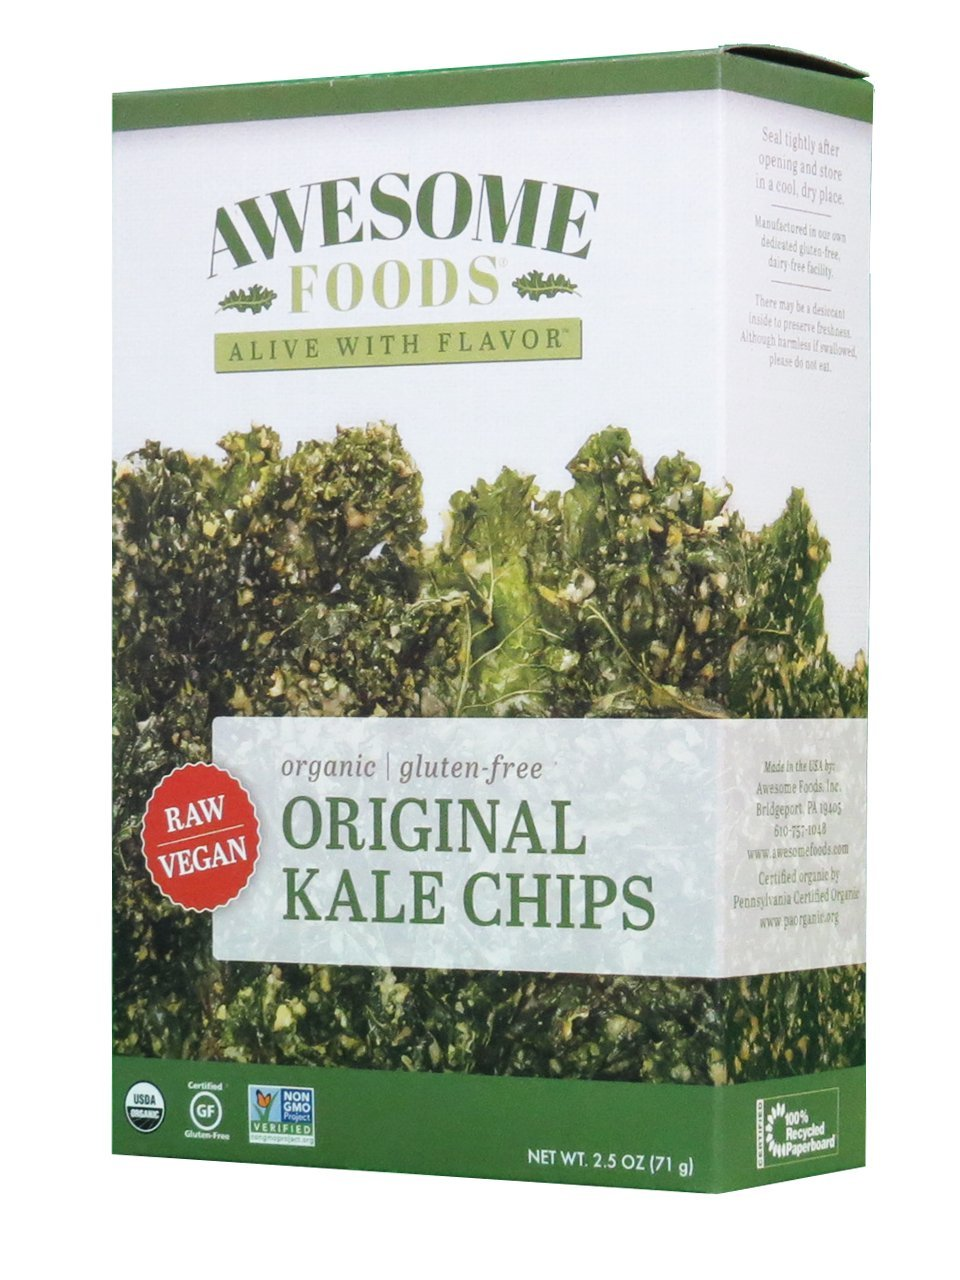 Original Kale Chips, 4 Pack by Awesome Foods